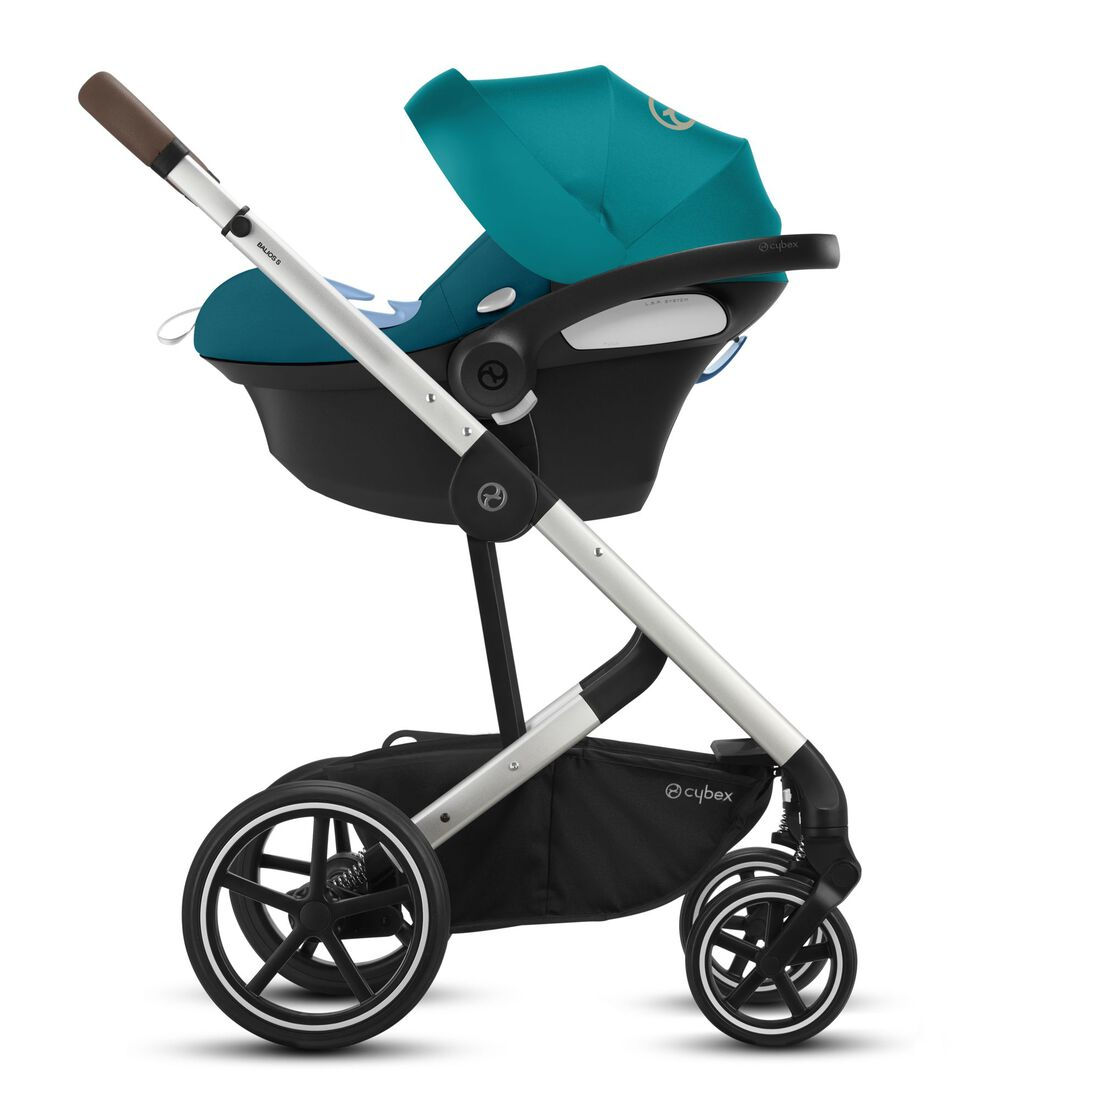 CYBEX Balios S Lux - River Blue (Silver Frame) in River Blue (Silver Frame) large image number 3